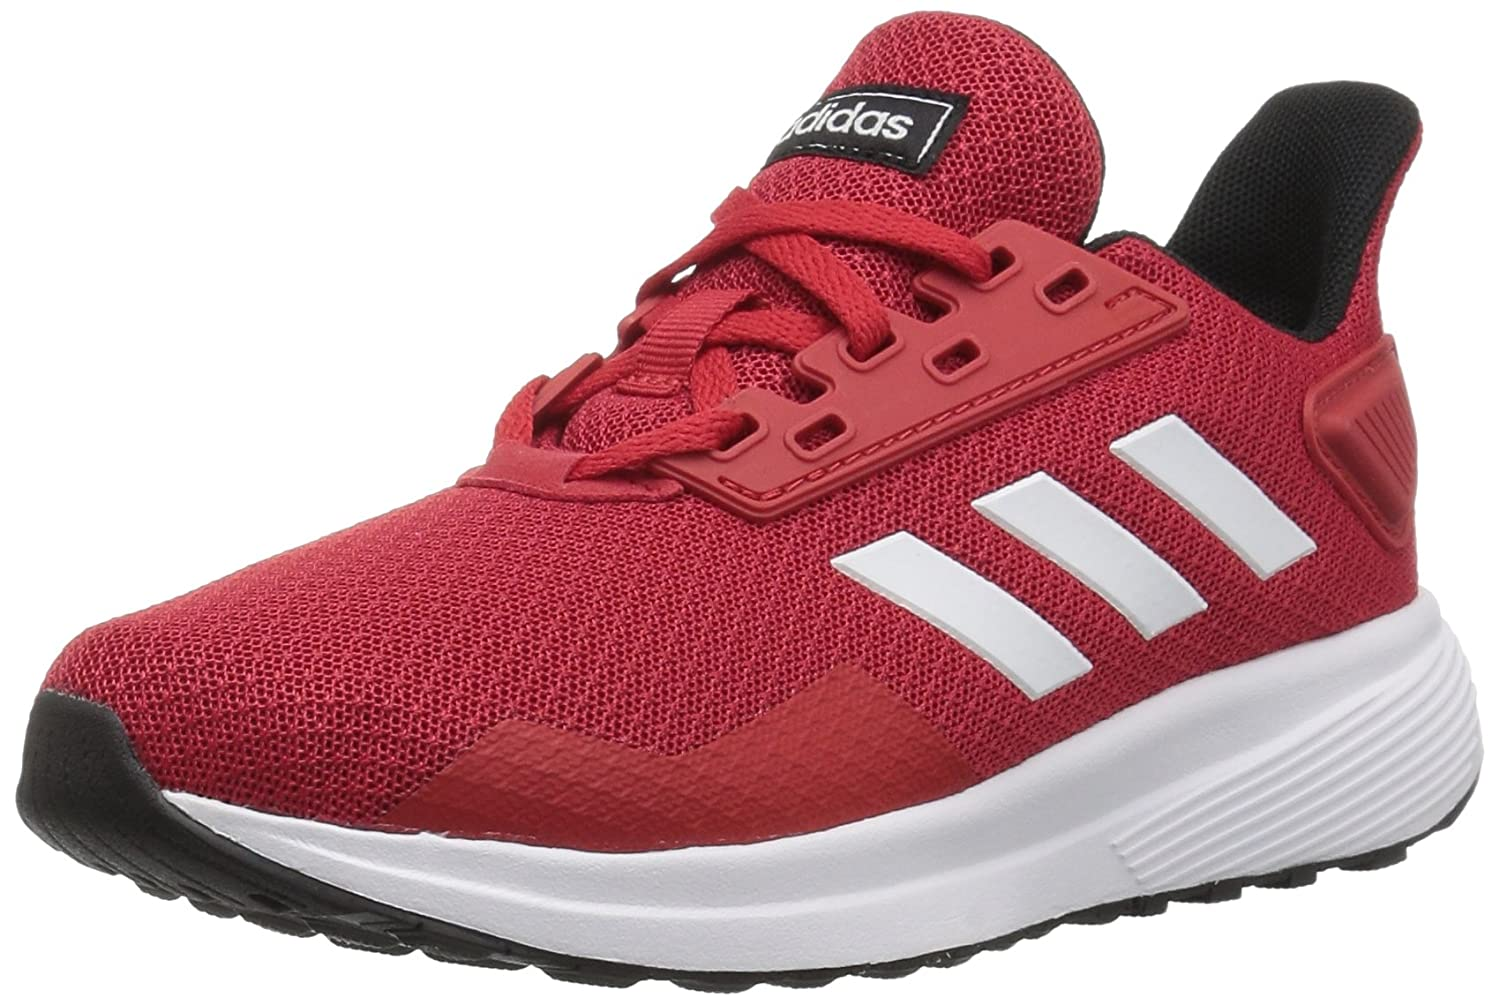 adidas Duramo 9 Running Shoes (For Women) Save 20%